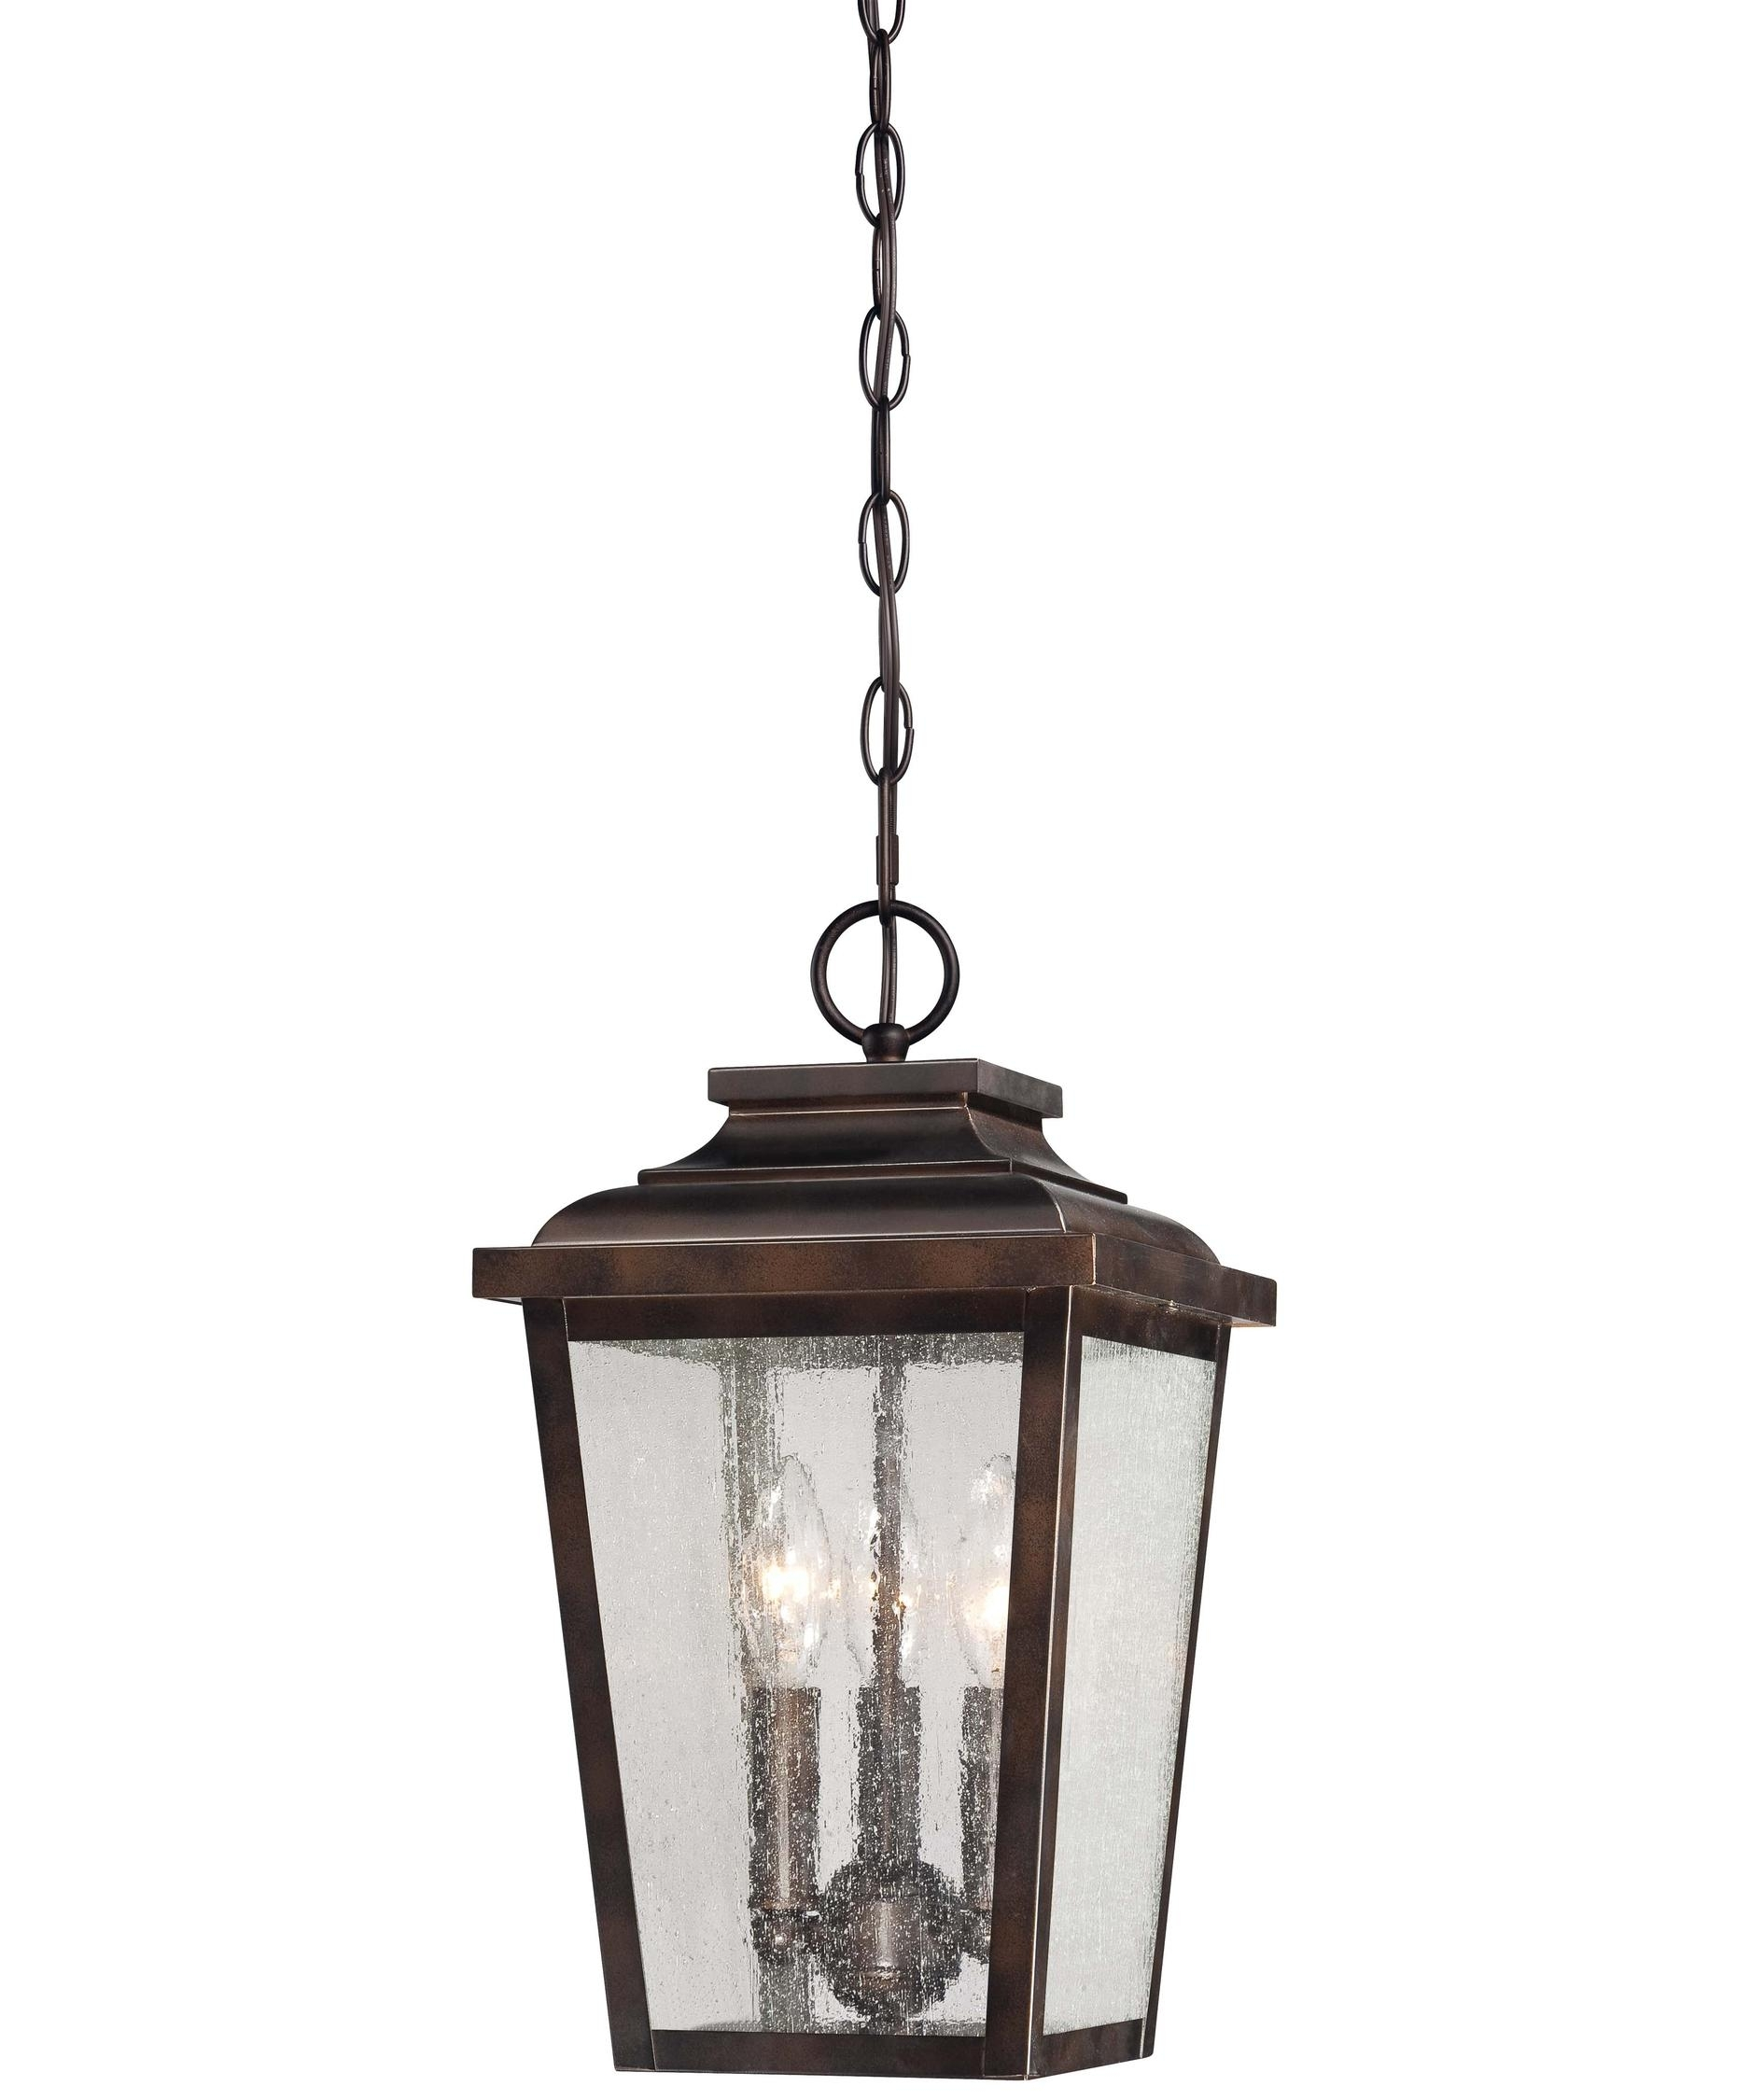 Porch Light Pendant: 15 Best Ideas Of Outdoor Hanging Lanterns From Australia